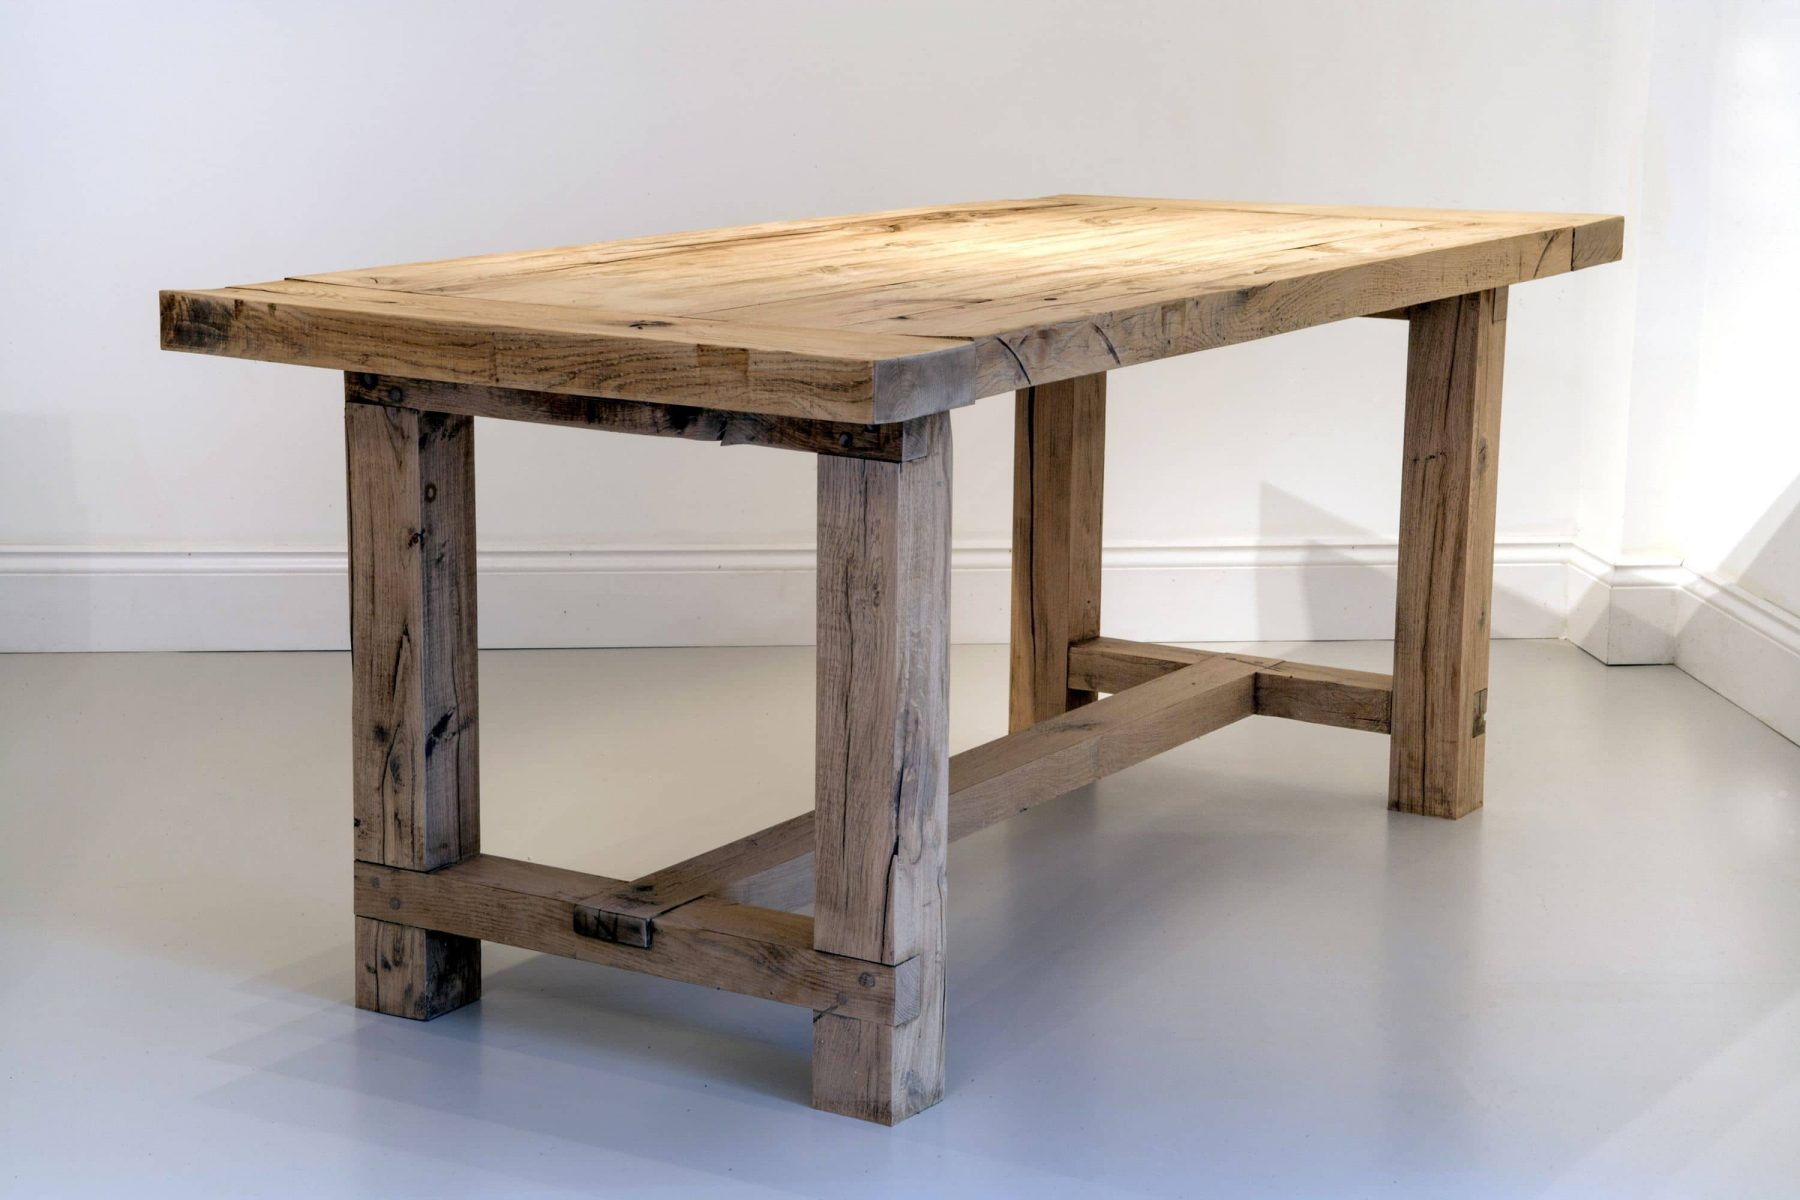 Rustic wooden dining table